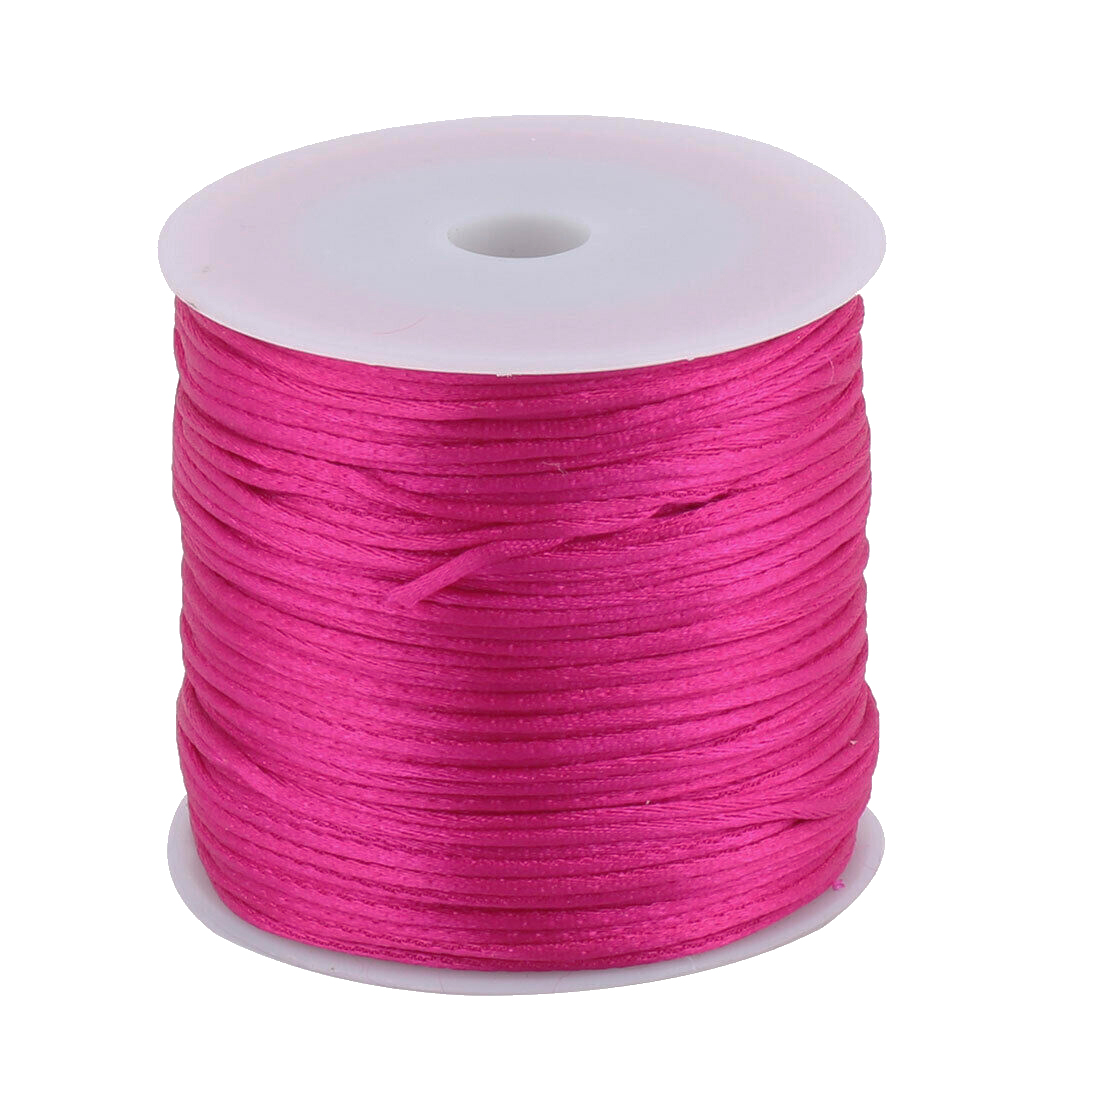 #1 Mousetail, 1.5mm Nylon cord, 76 yards (70m), Dusty Rose